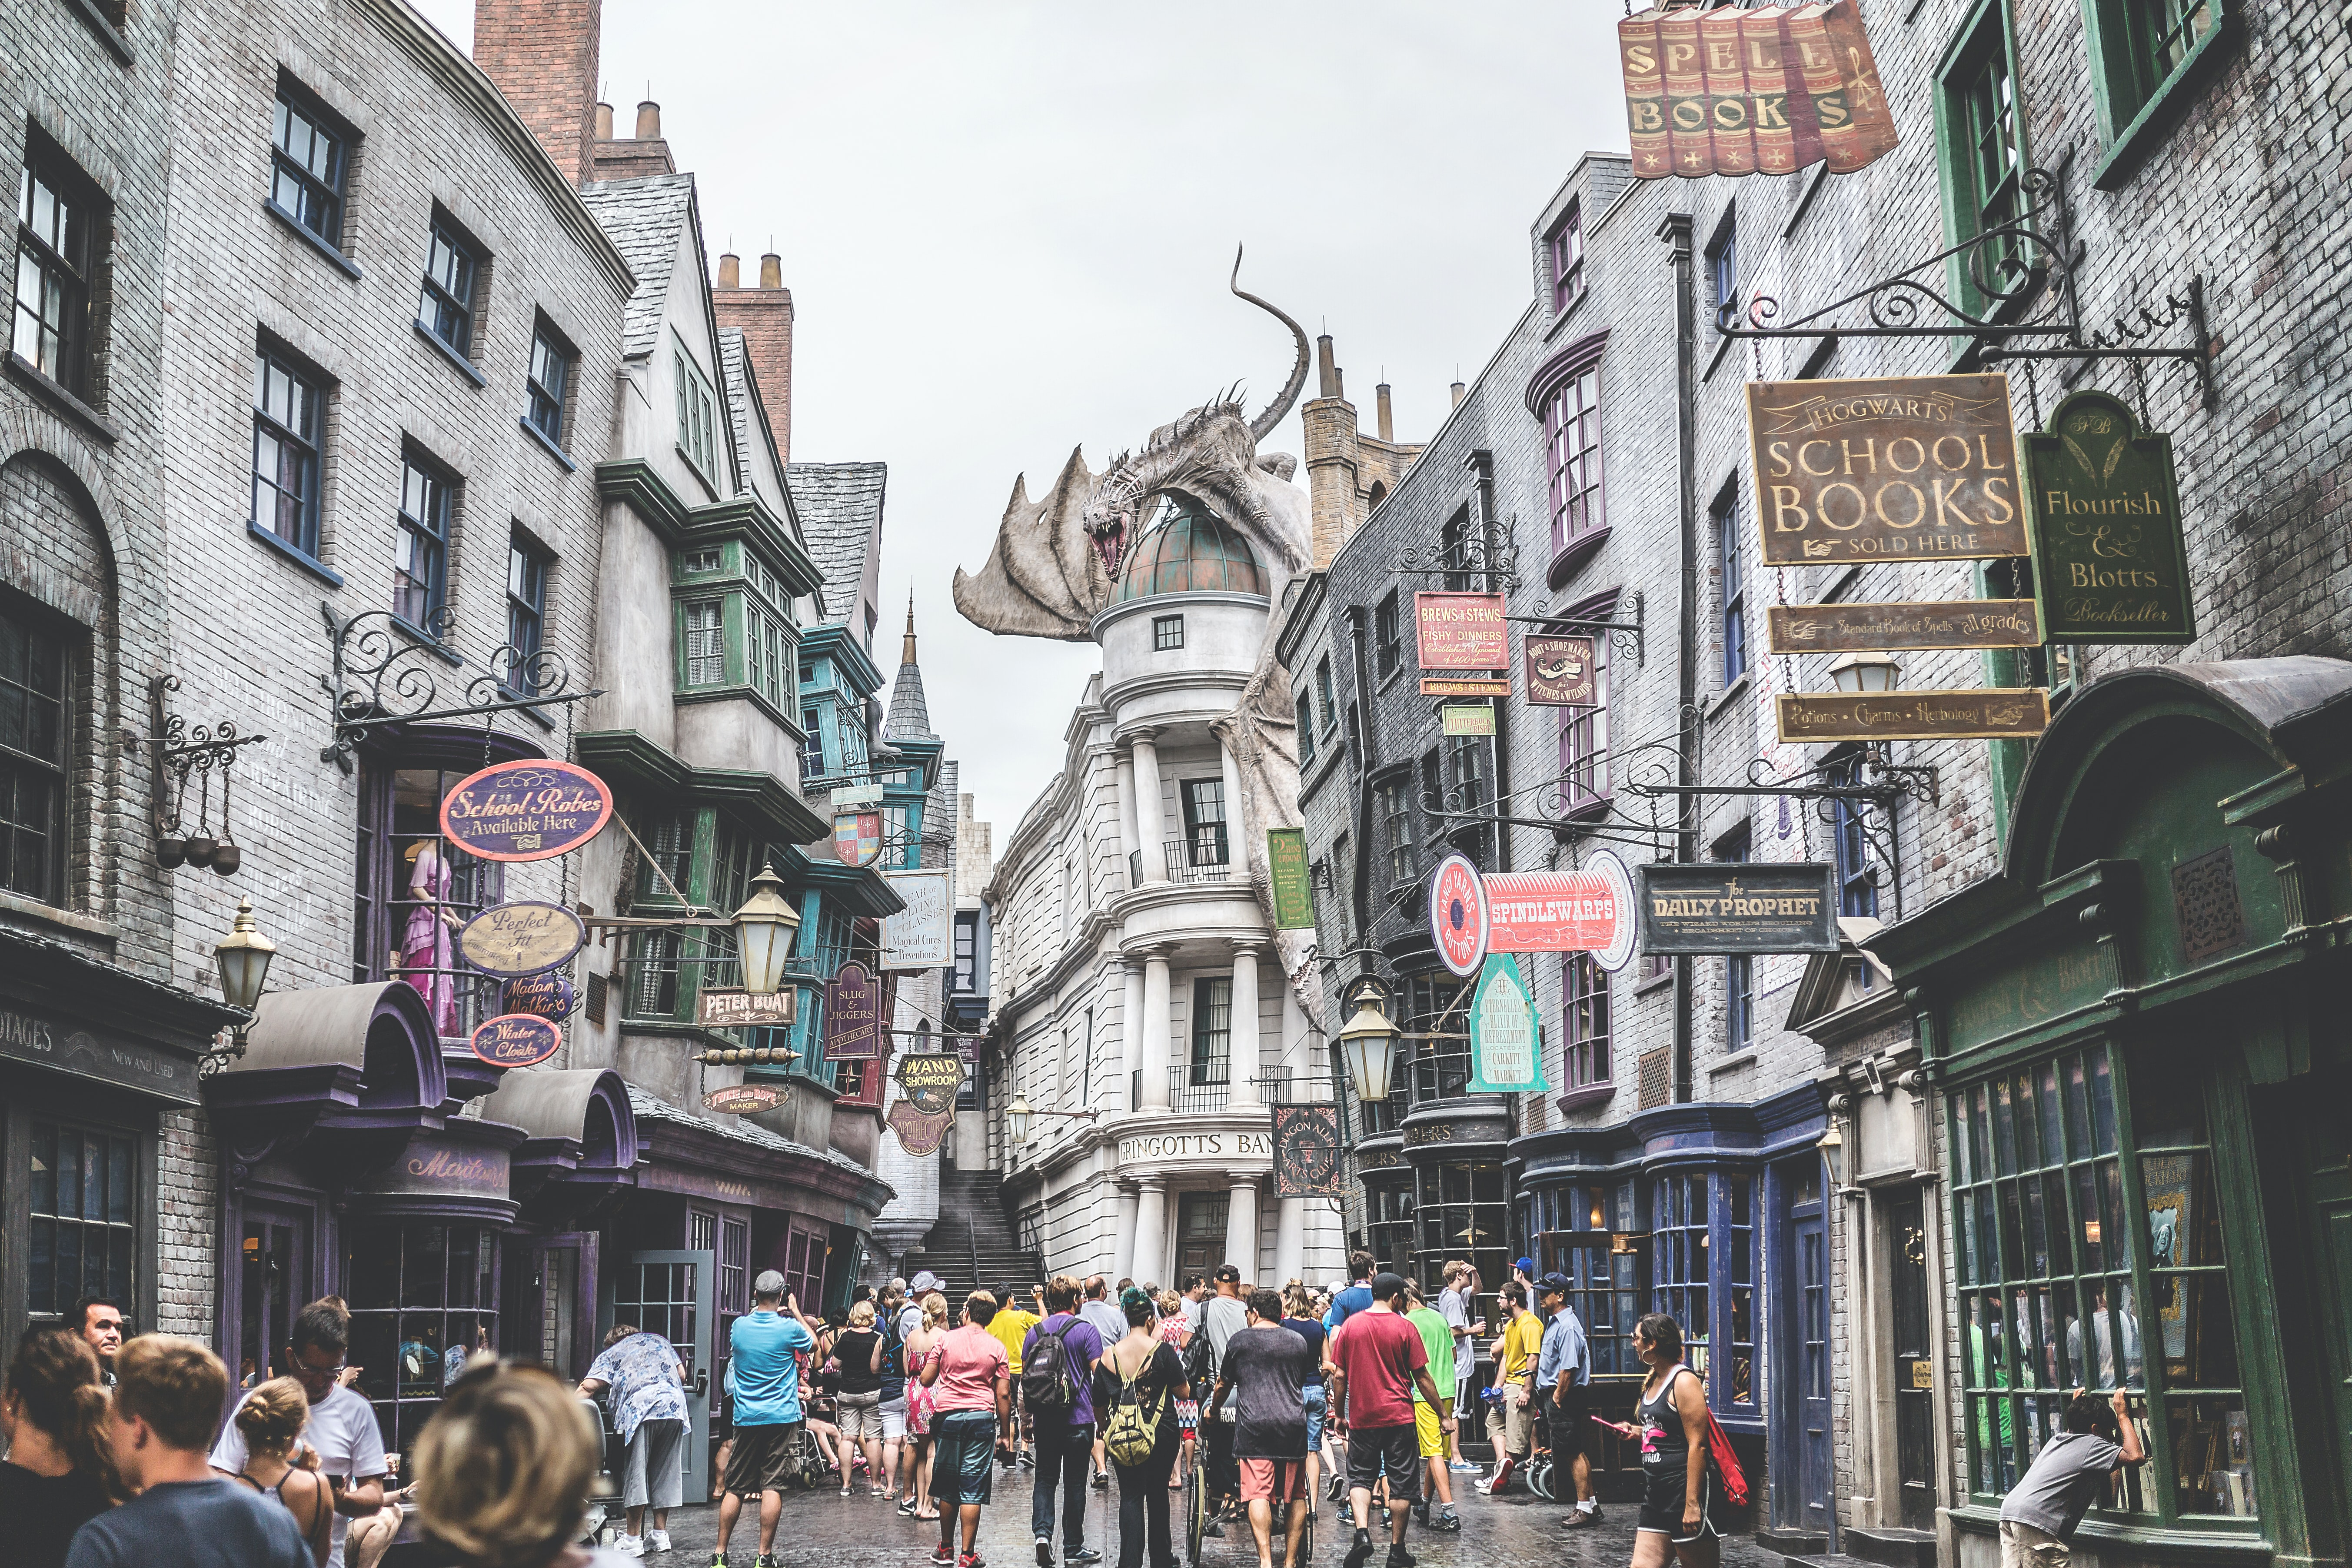 Top Ten Magical Sweets From The Wizarding World of Harry Potter